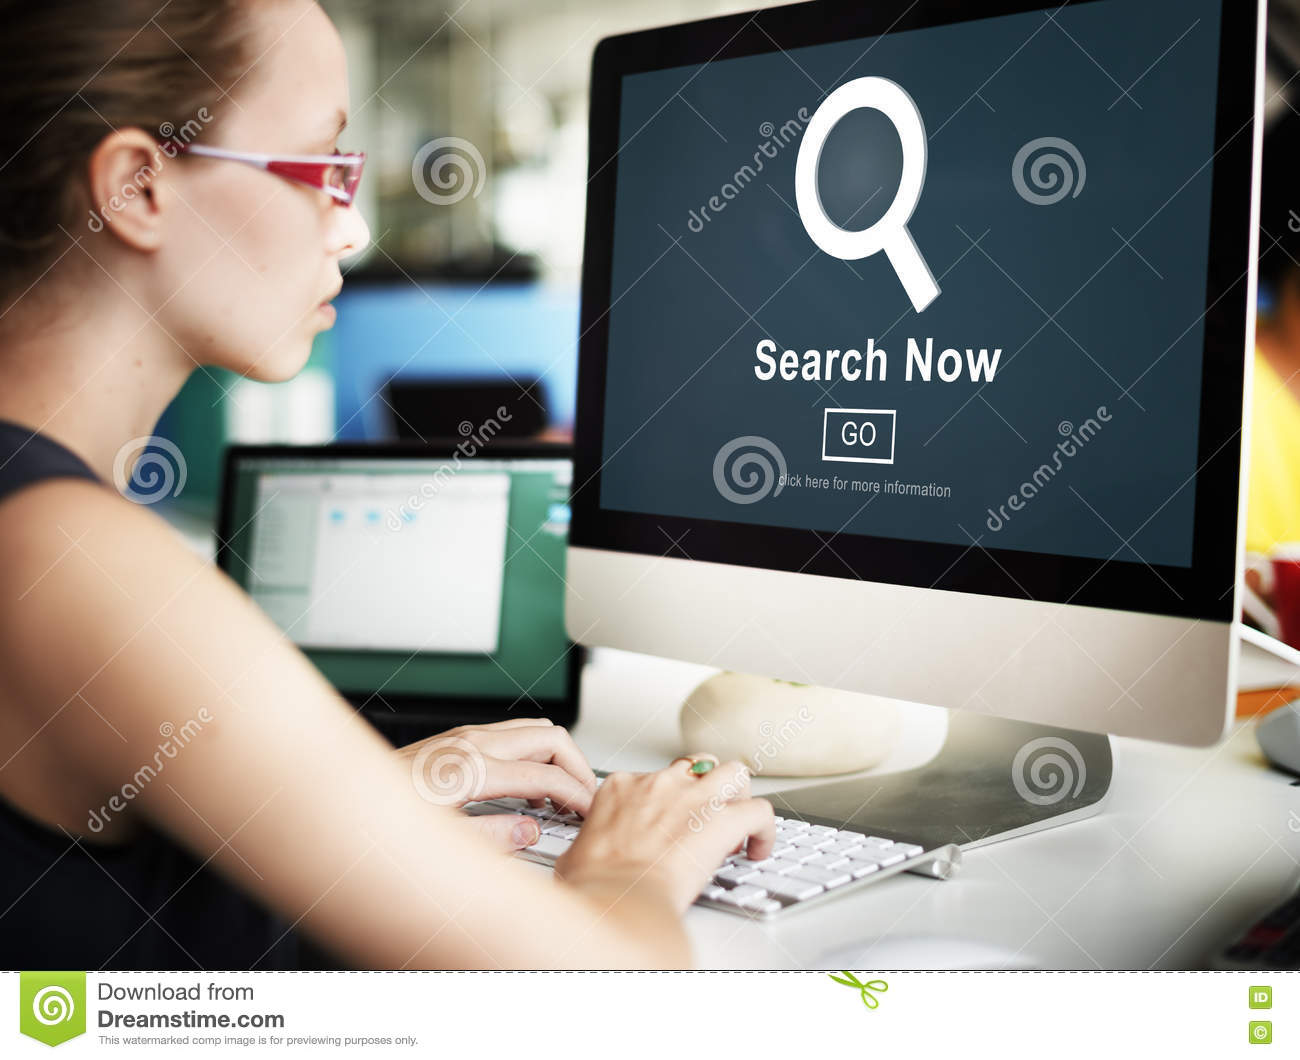 Search Now Exploration Discover Searching Finding Concept